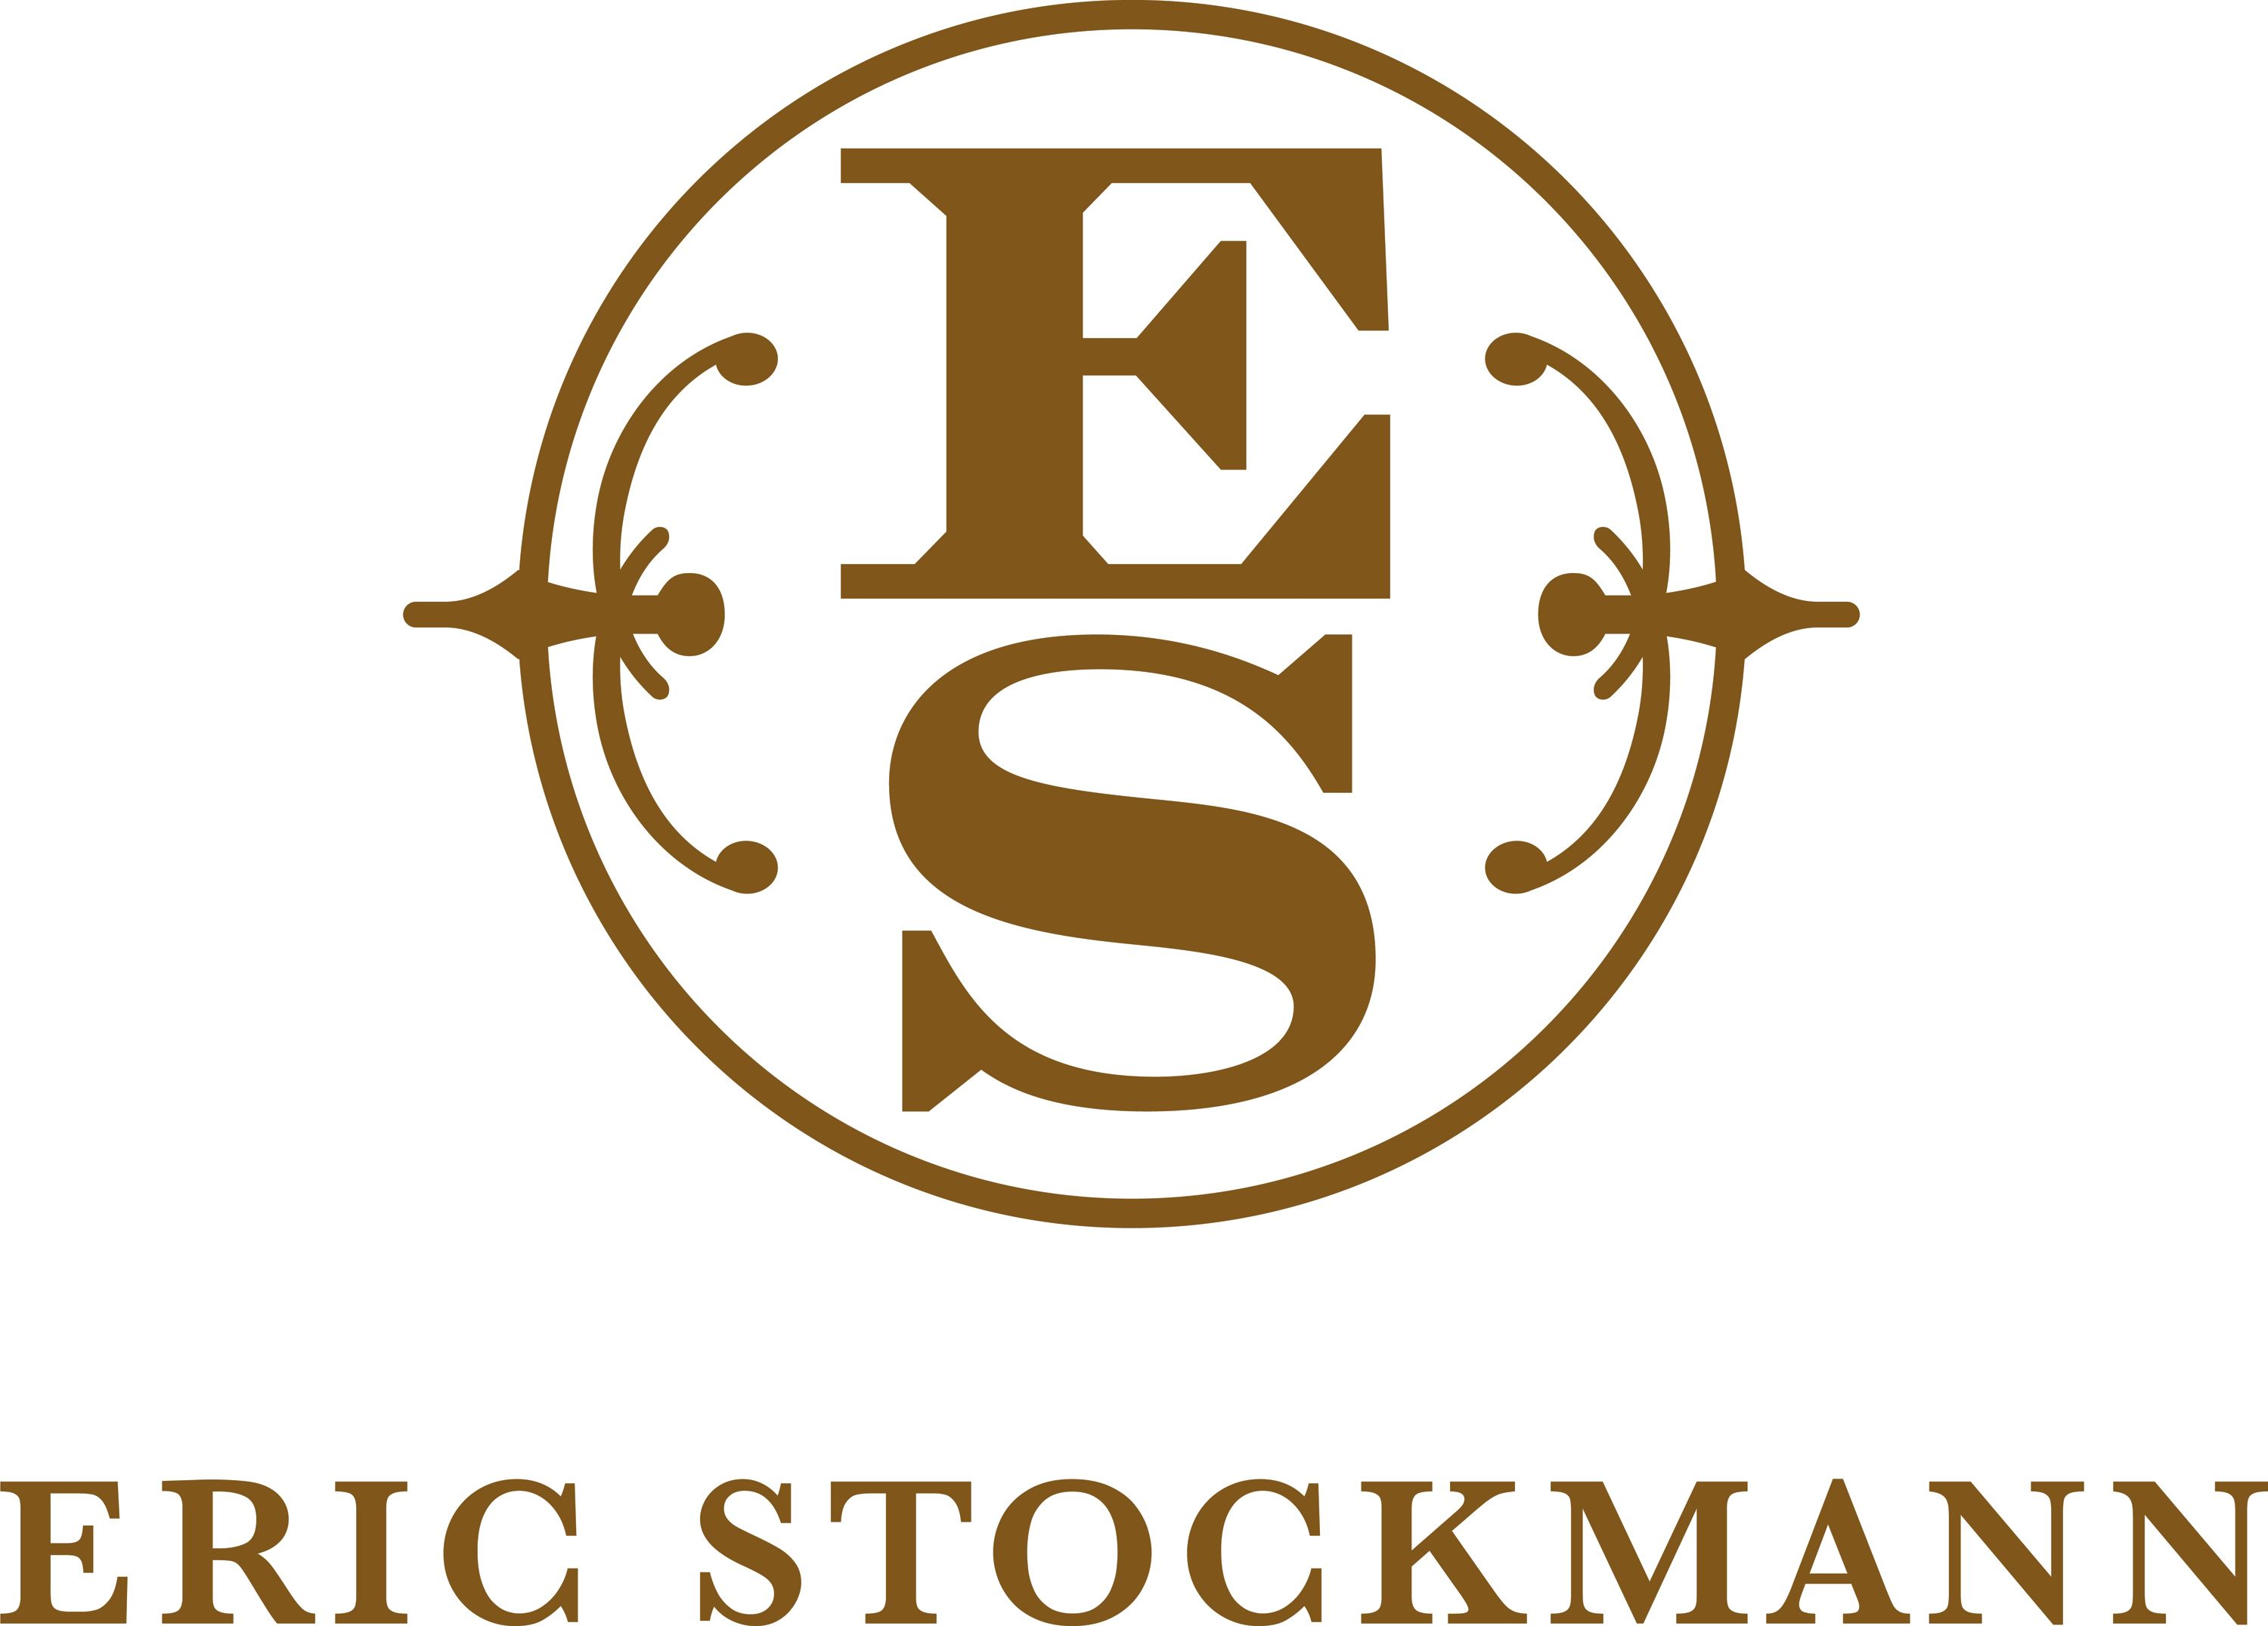 Eric Stockmann - Living, personified